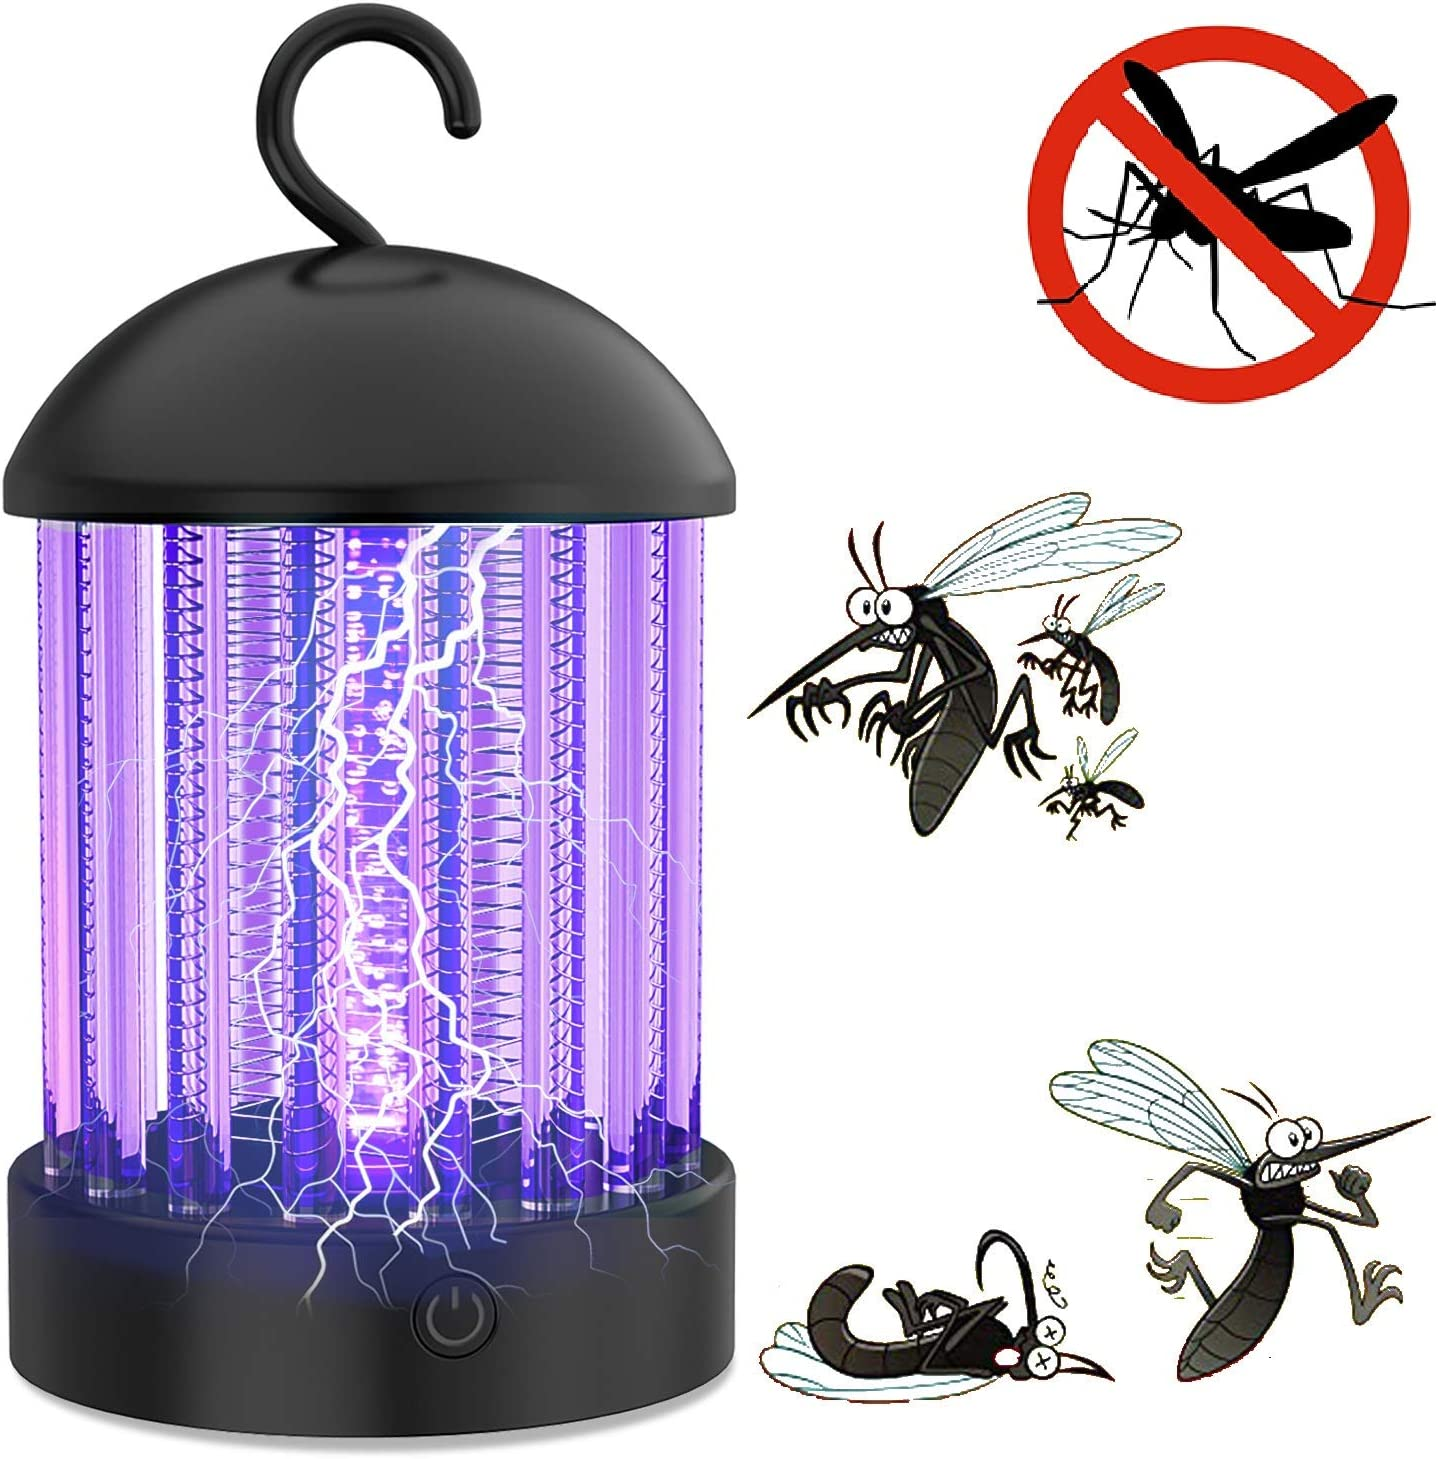 Aukfa Electronic Mosquito Killer Lamp,Bug Zapper with Light Mosquito Trap, Fly Zapper Insect Killer Safety & Non-Toxic for Home Indoor/Outdoor Bedroom Kitchen Use